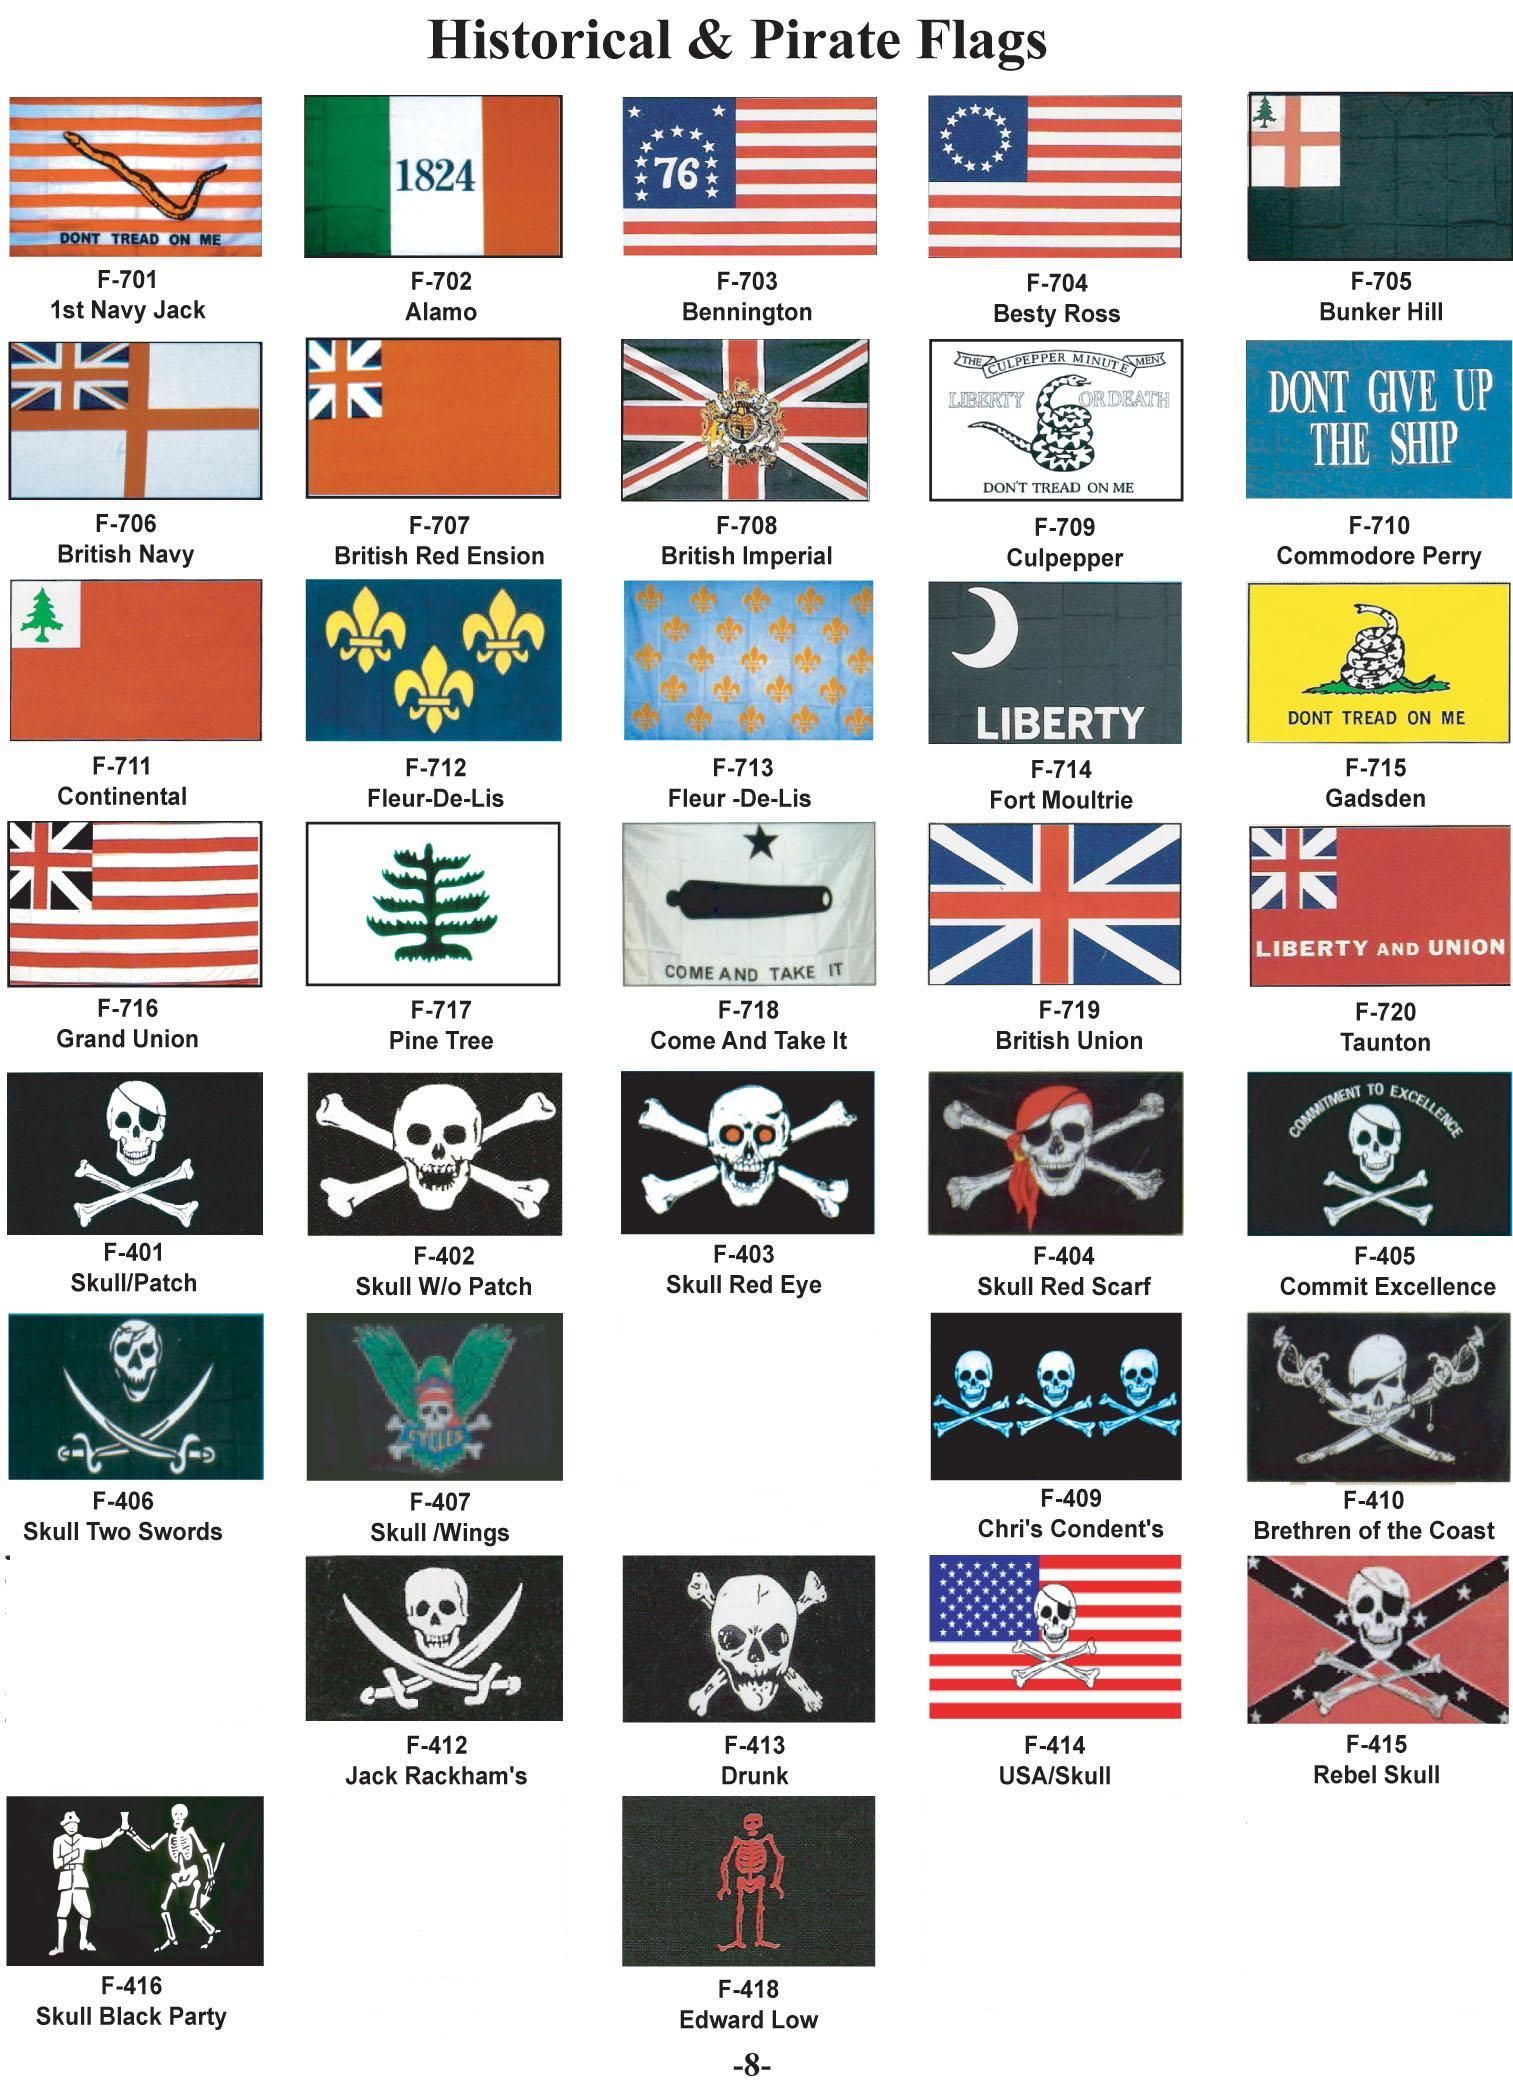 famous pirate flags - Google Search